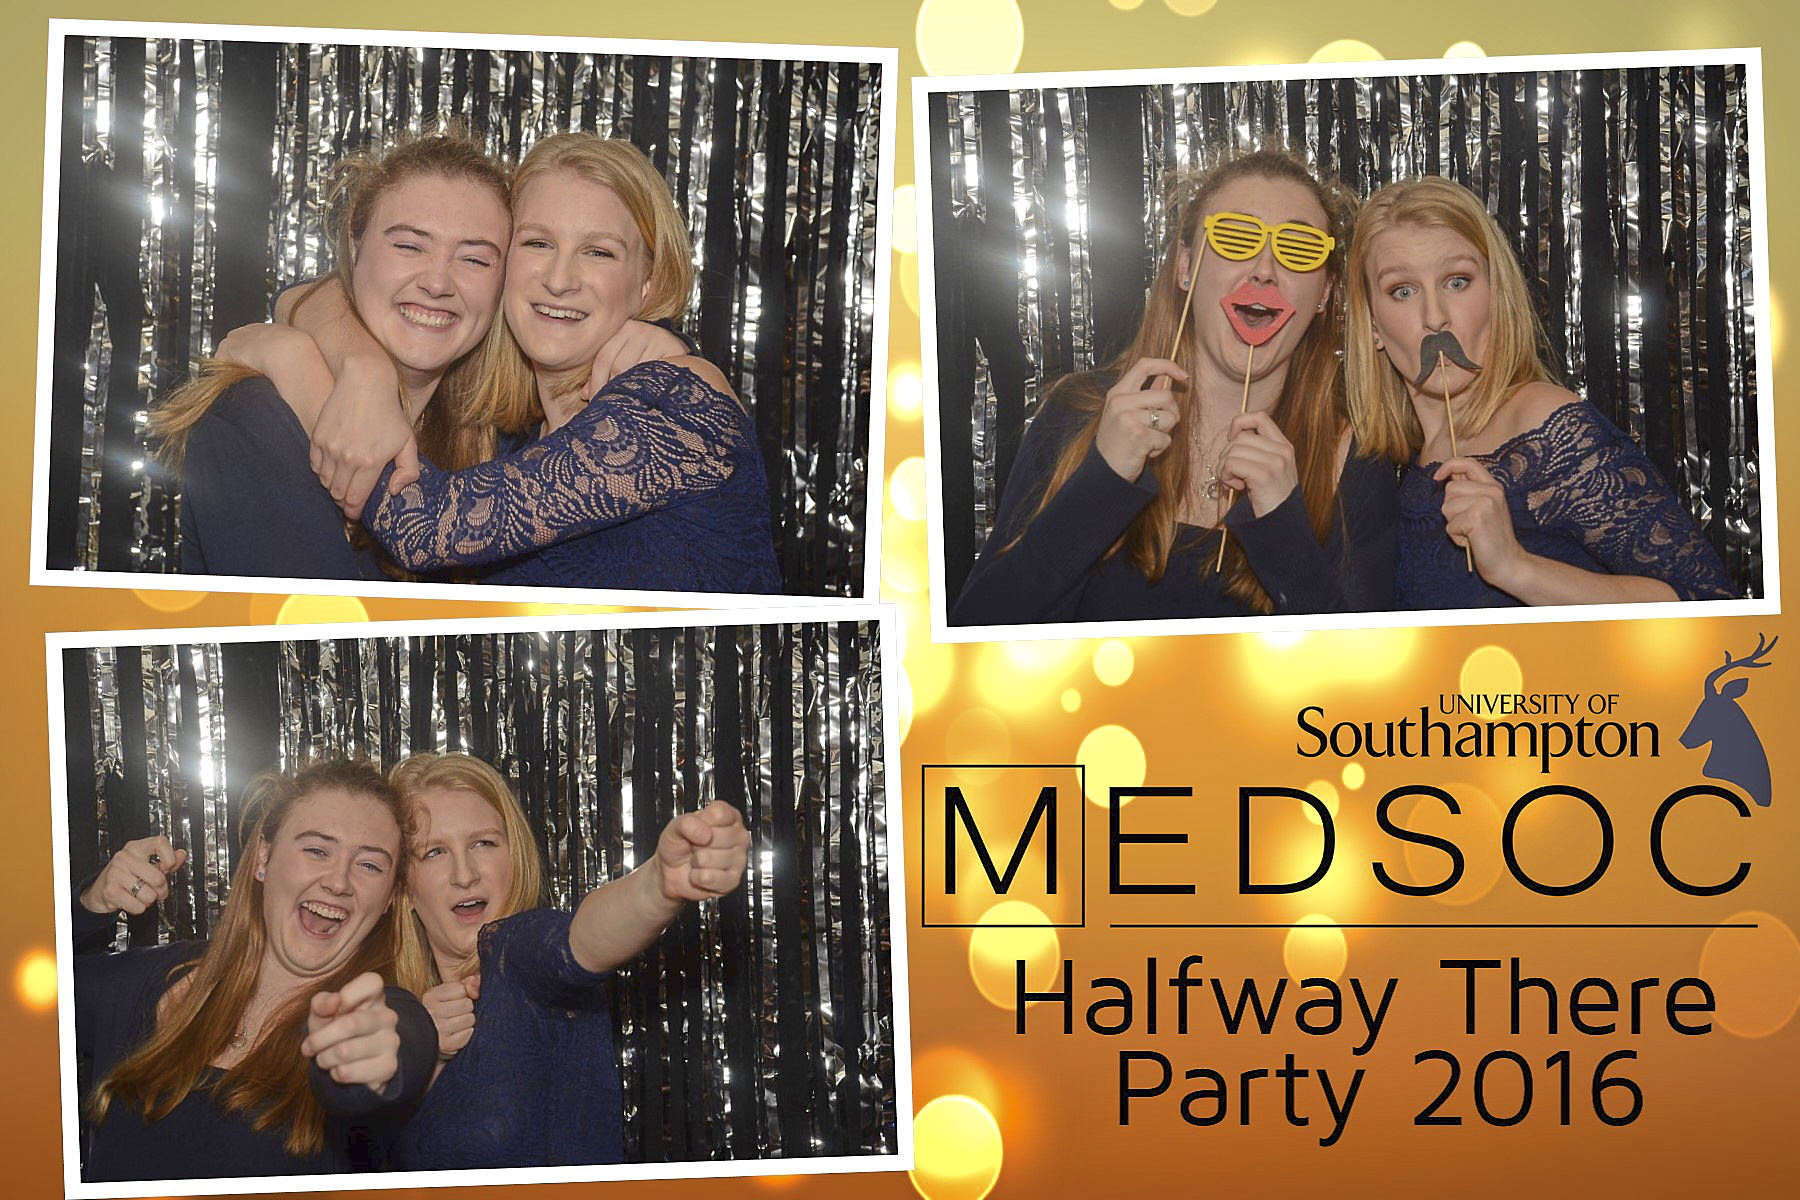 MedSoc Halfway There Party 2016 DS004511.jpg